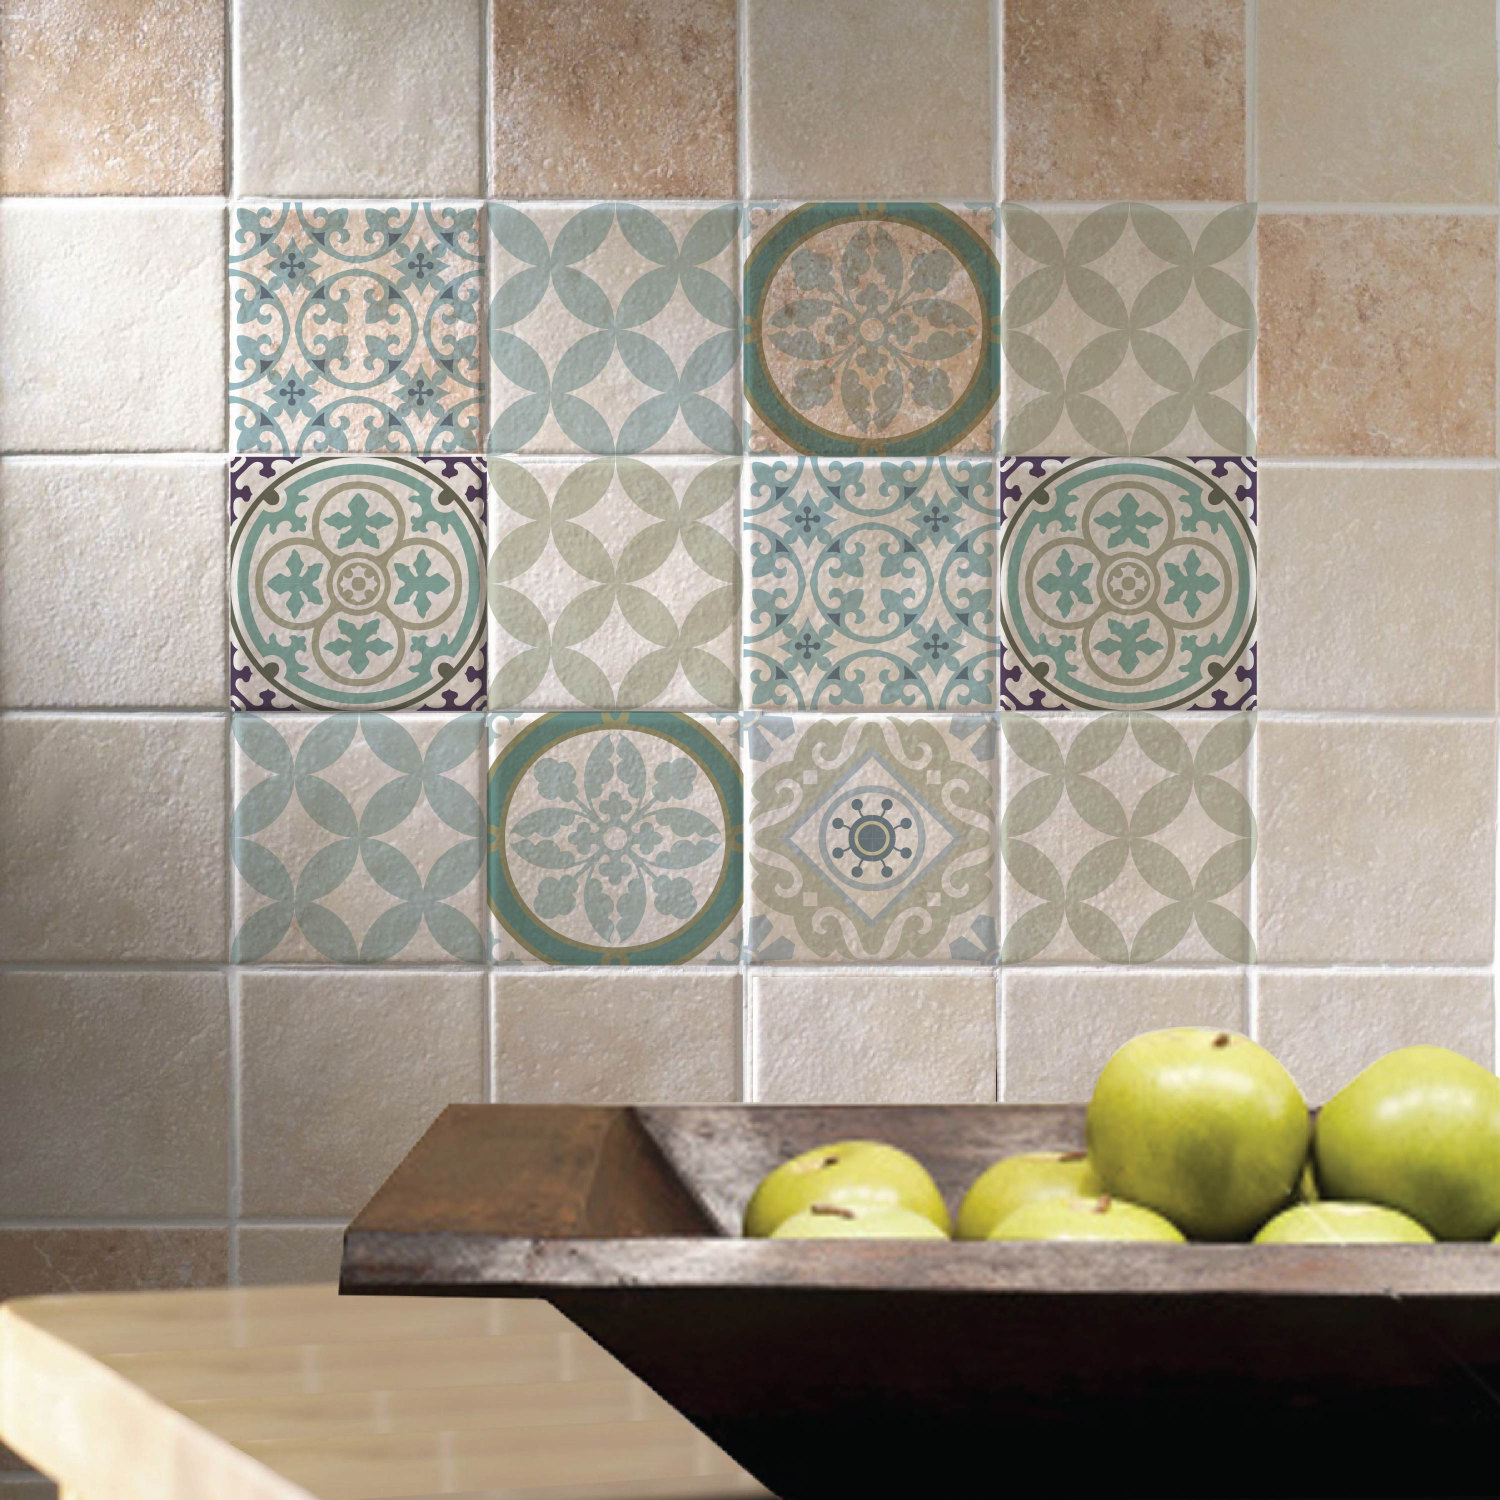 Free Kitchen Tiles